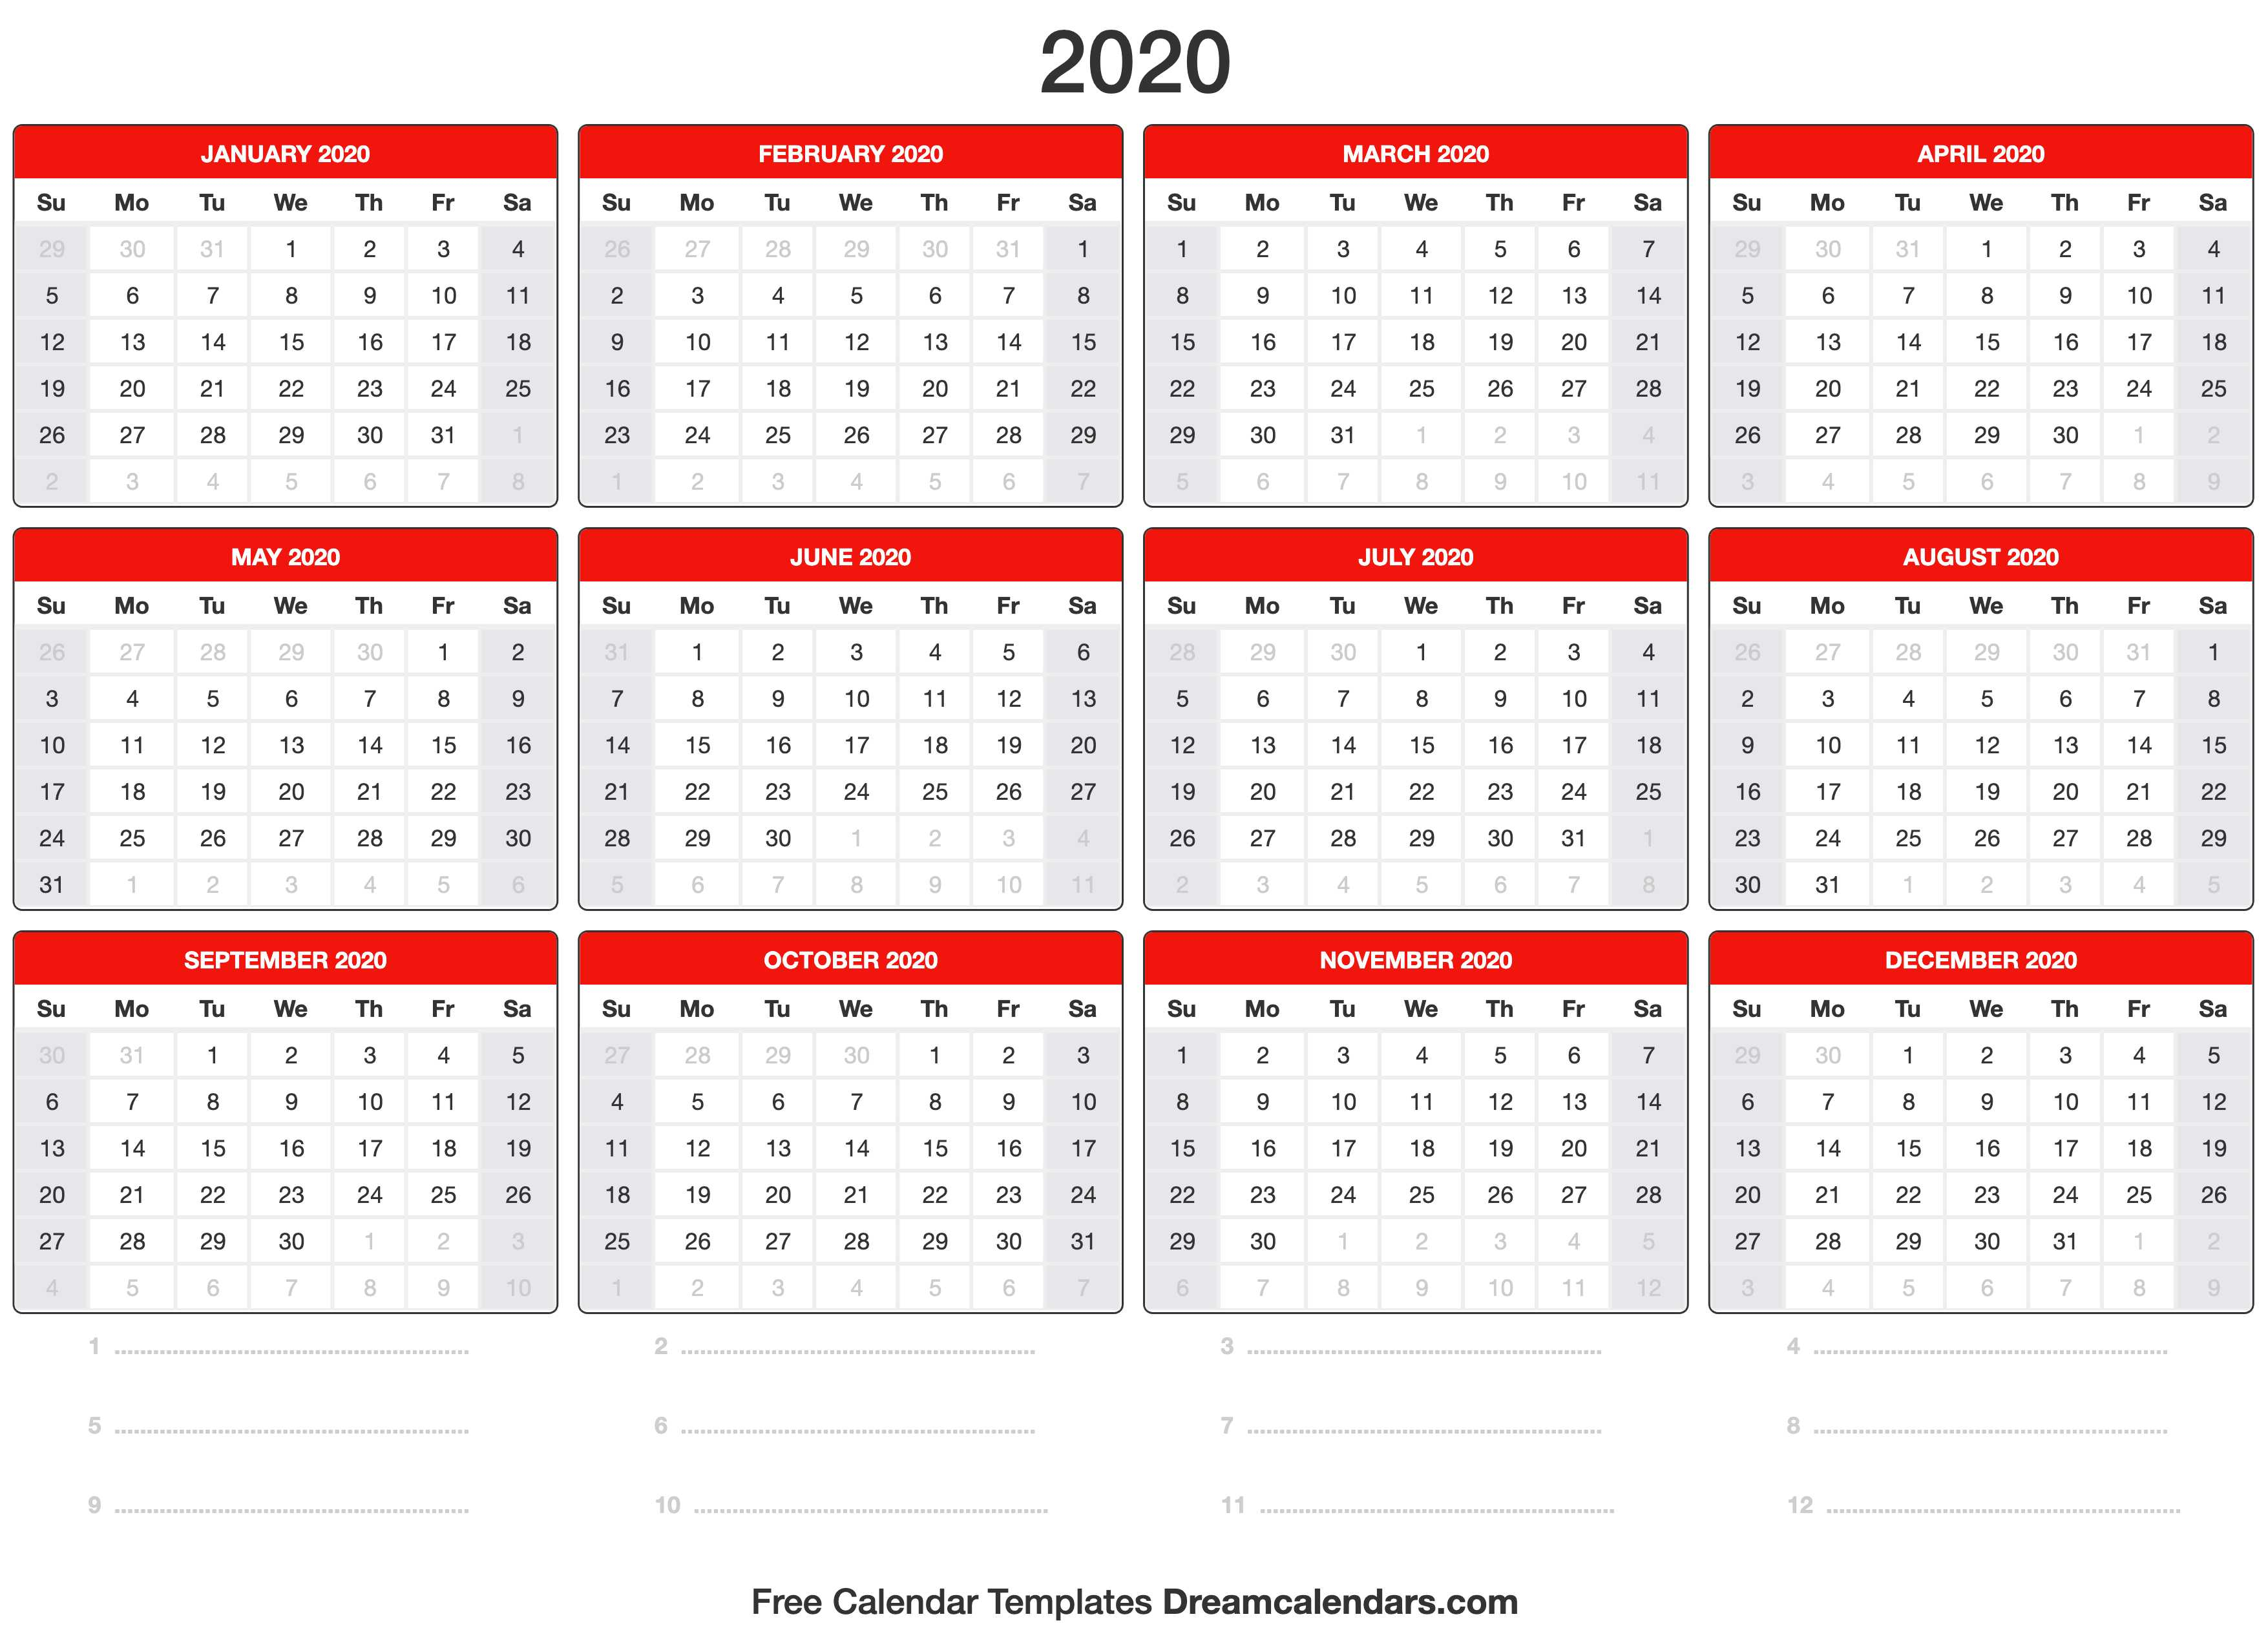 Printable 2020 Calendar - Dream Calendars for Free Calendar 2020 Printable Without Download